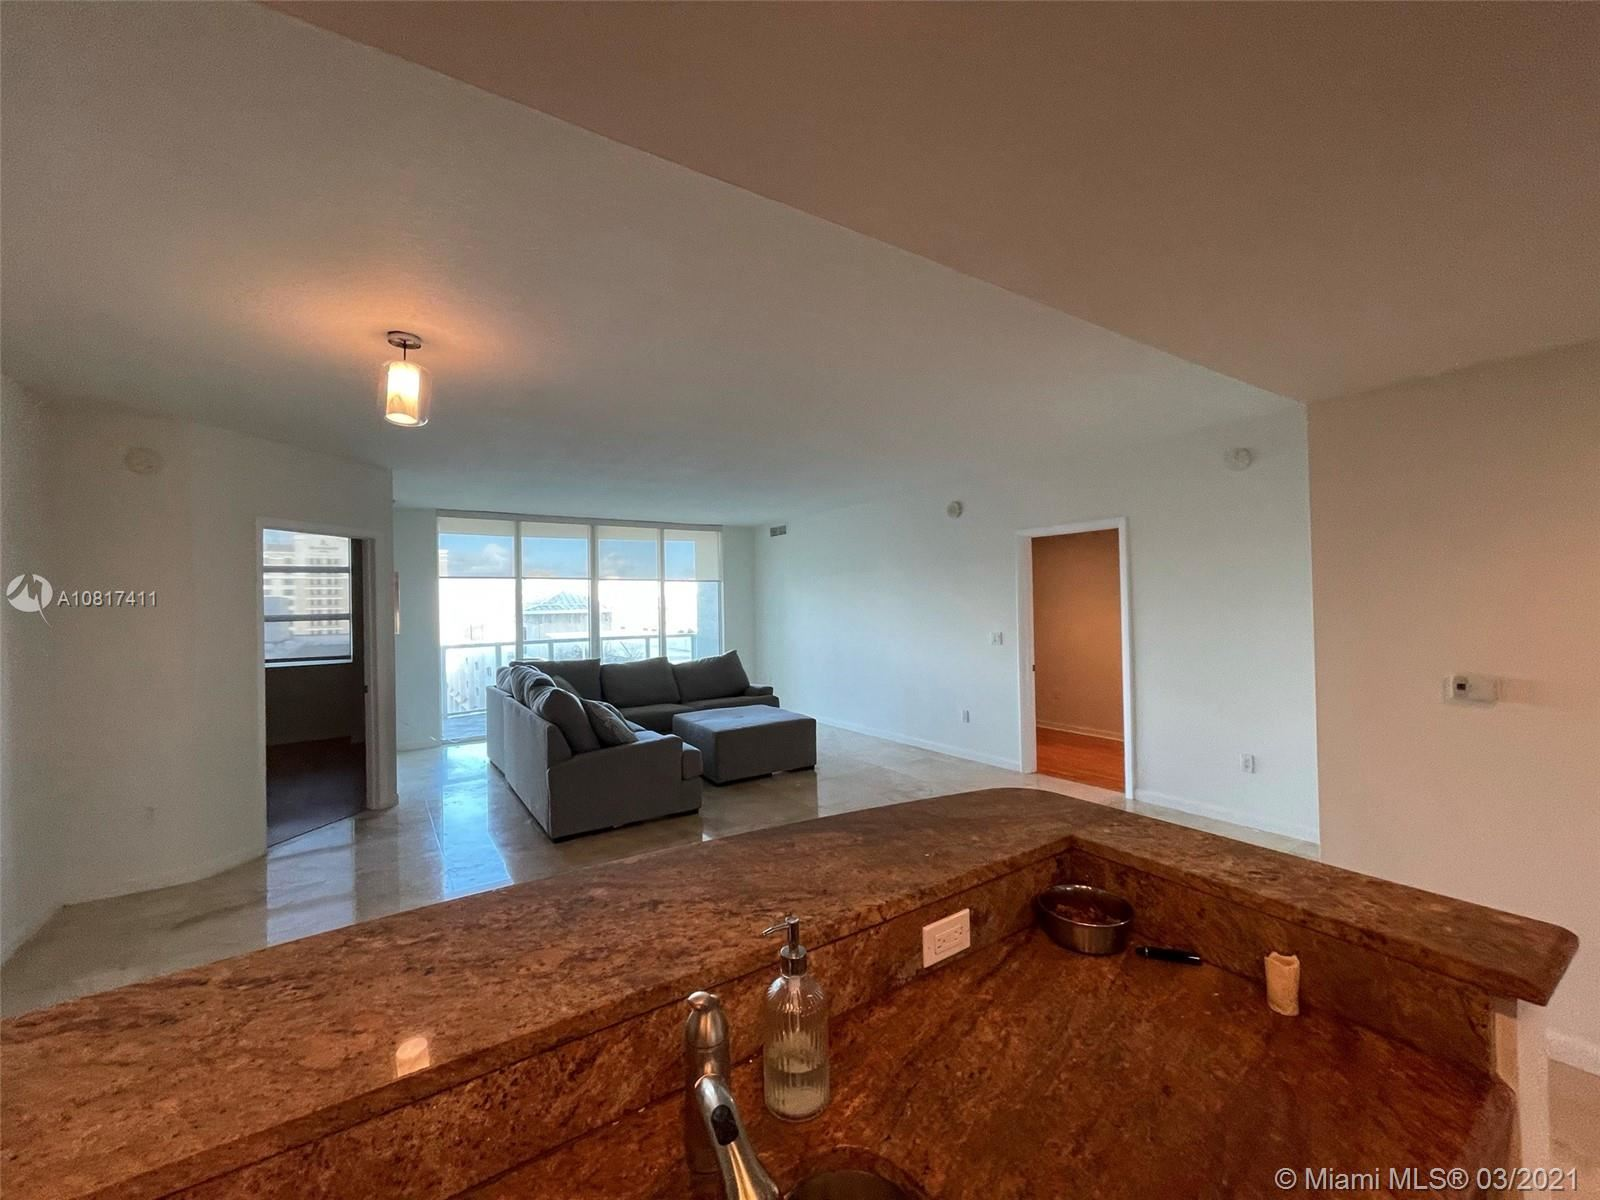 Photo of 1819 SE 17th St #702, Fort Lauderdale, FL 33316 (MLS # A10817411)